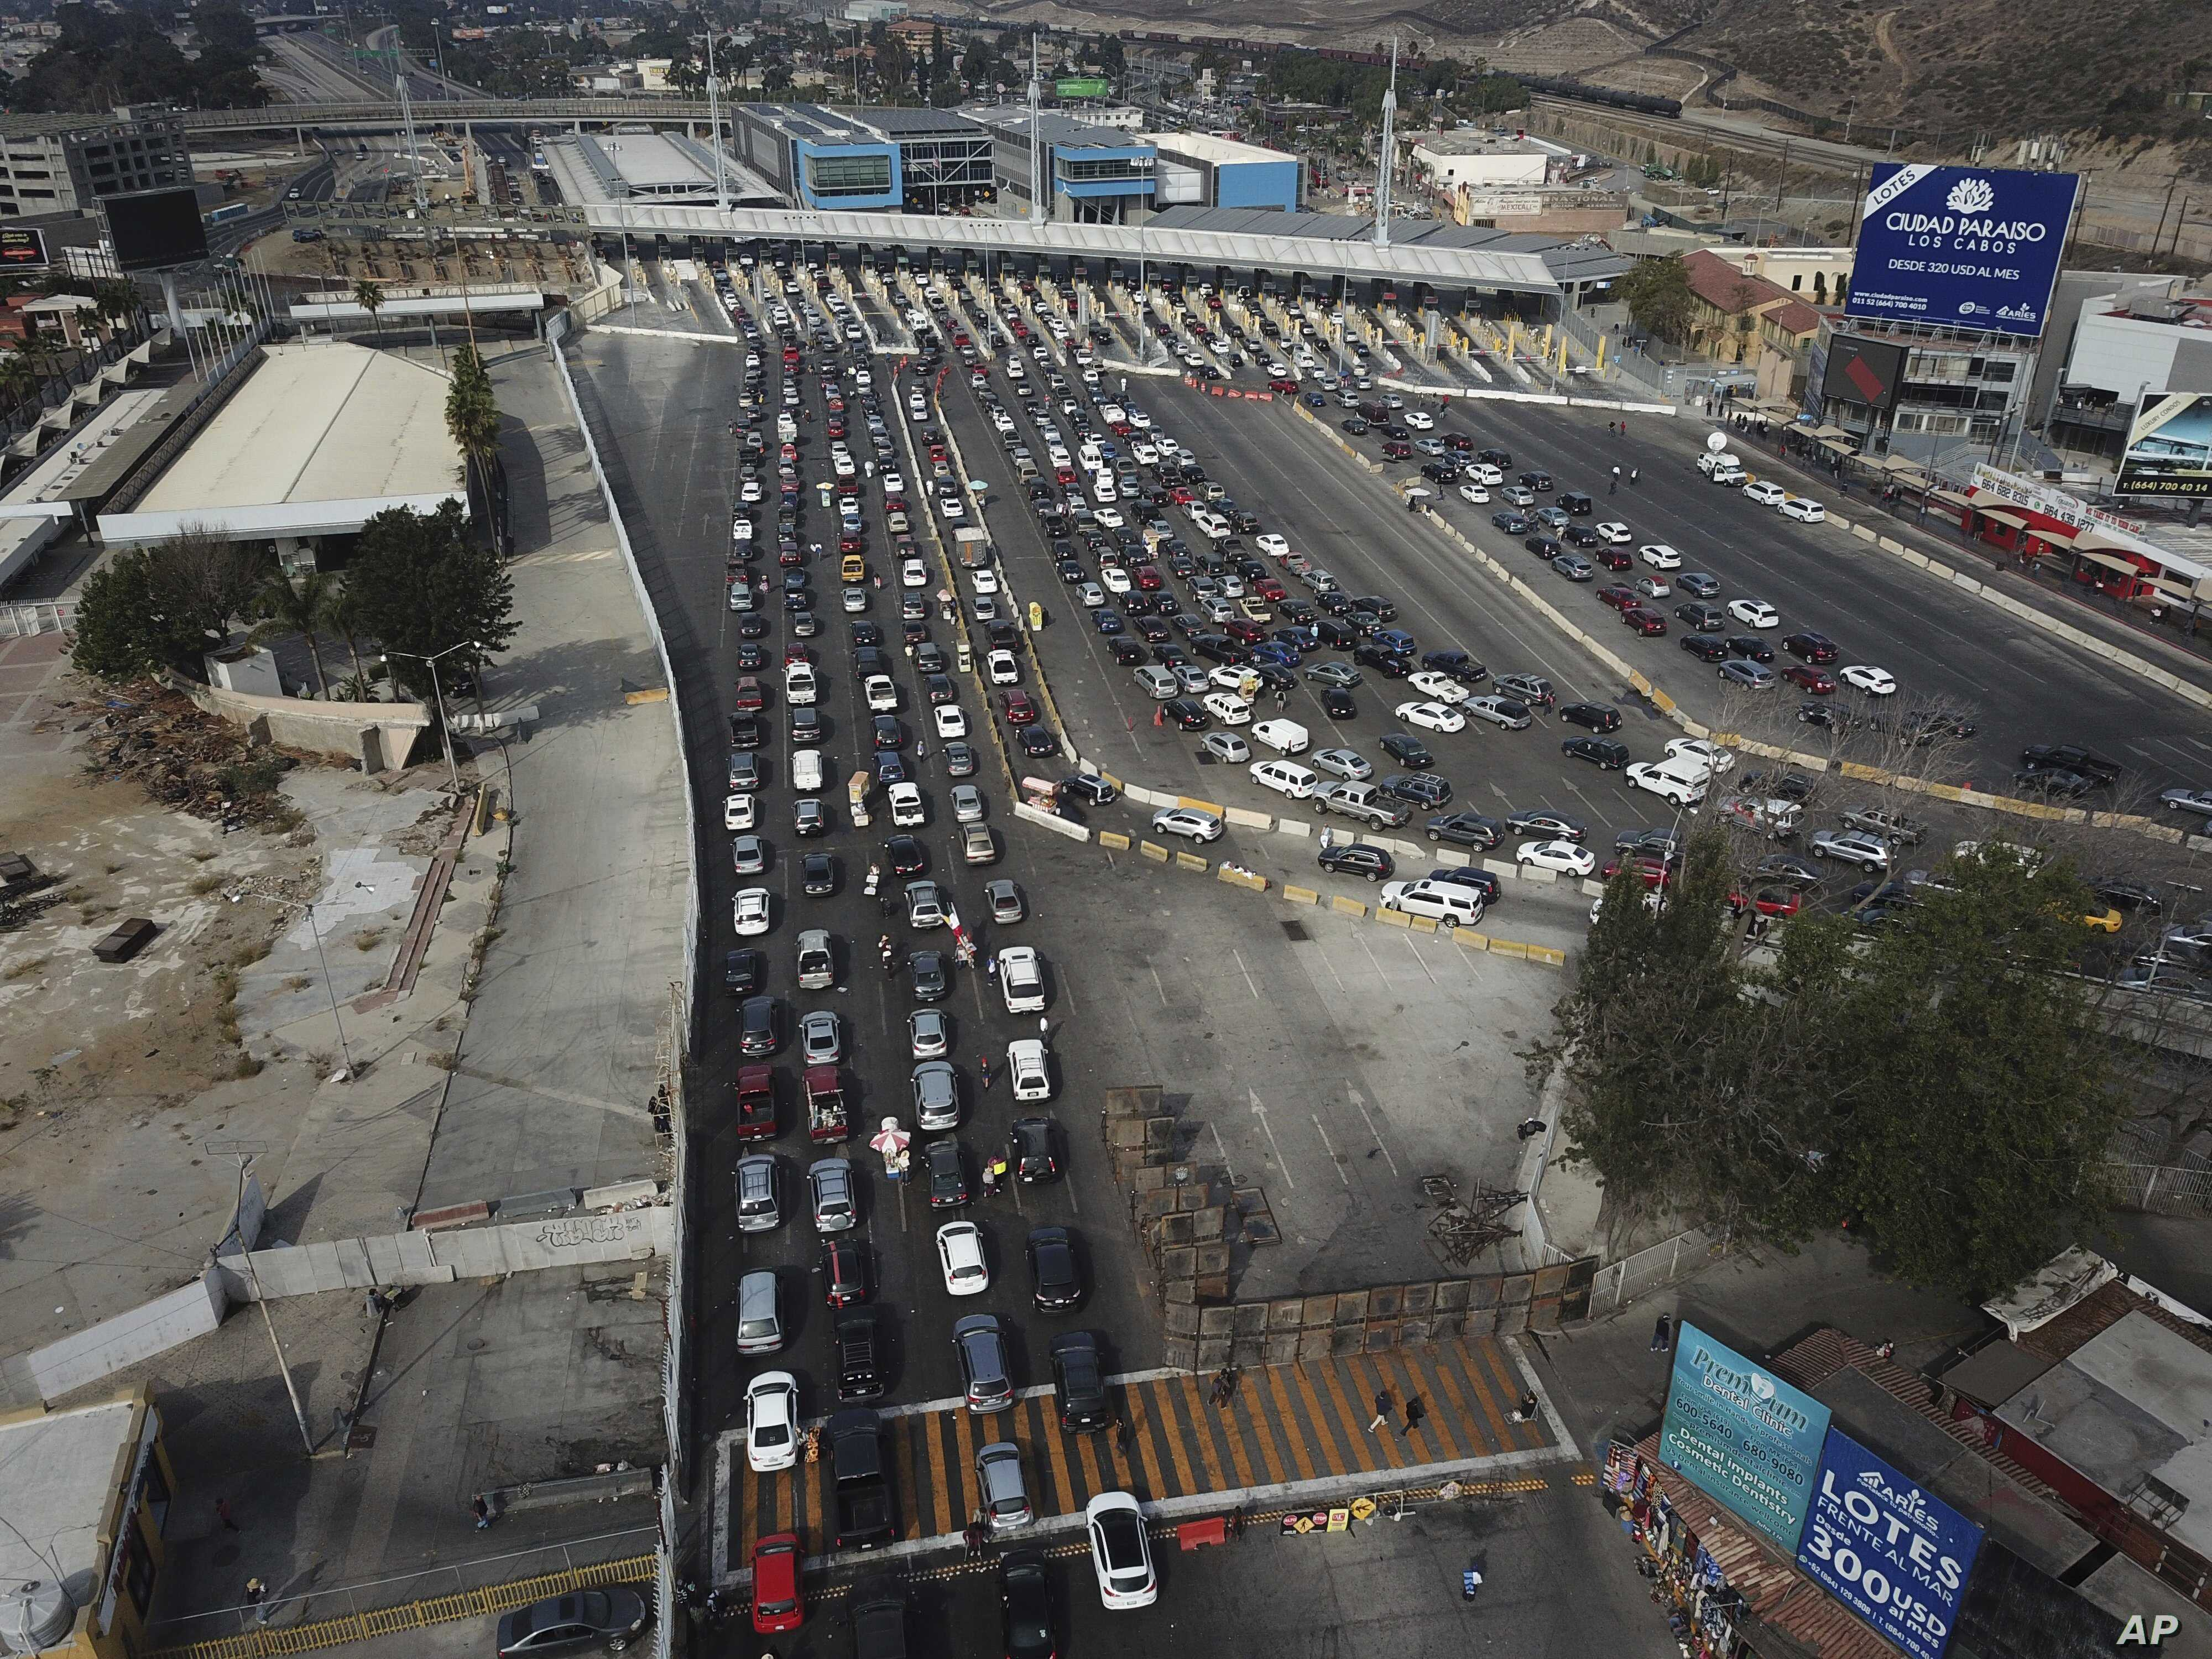 Drivers wait to cross the Mexico-U.S. border from Tijuana, Mexico, Nov. 19, 2018. The United States closed off northbound traffic for several hours at the busiest border crossing with Mexico to install new security barriers.